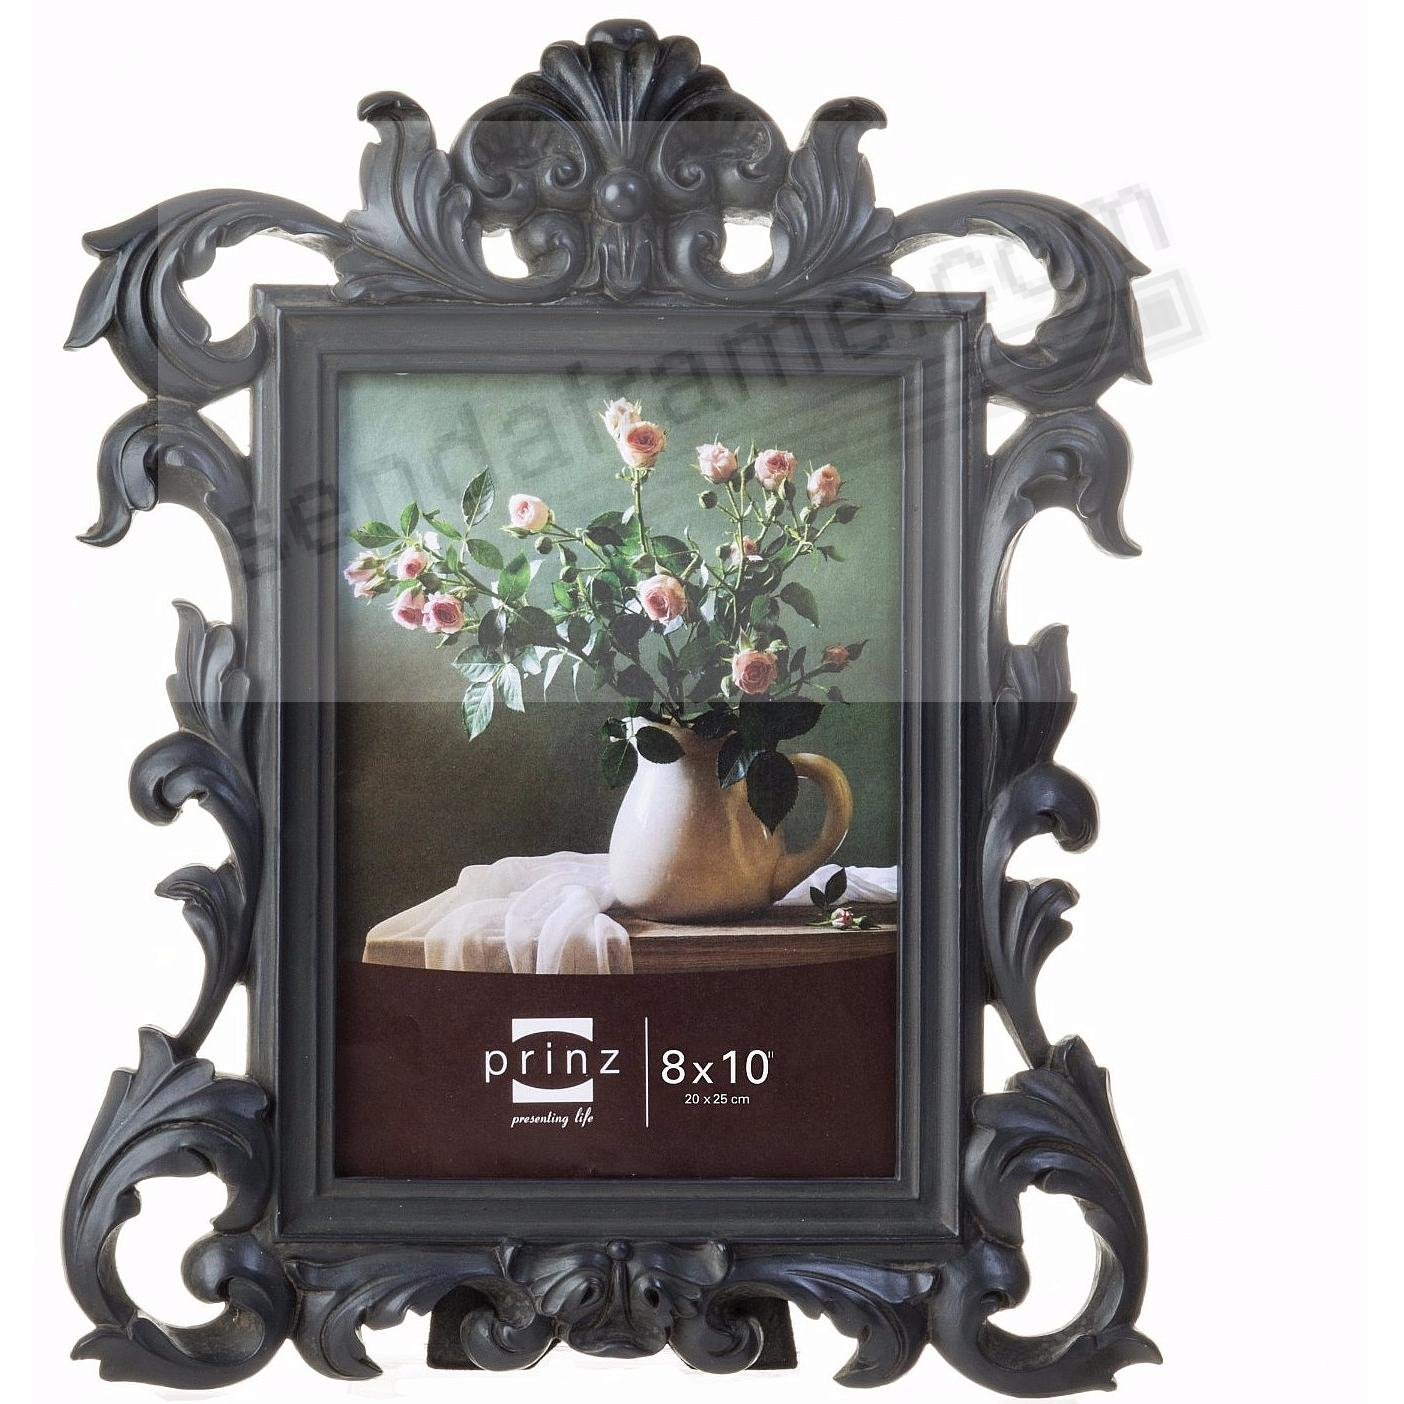 VERSAILLES Antique Black Resin 8x10 Frame by Prinz® - Picture Frames ...